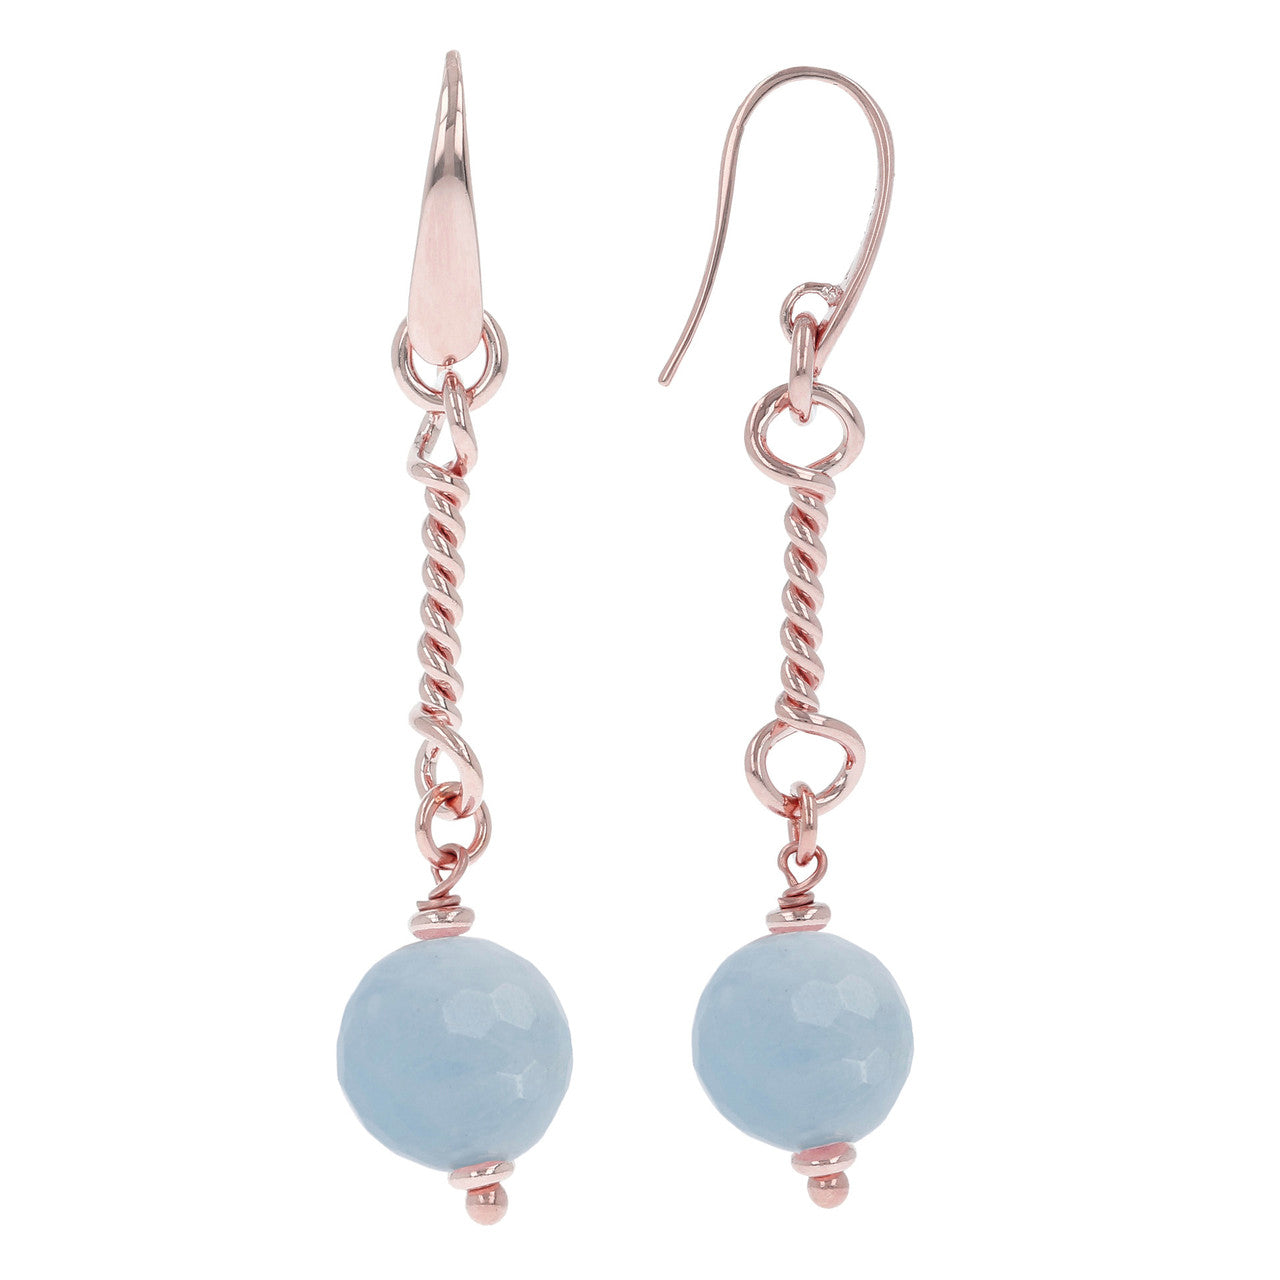 Romantic Wire Dangle Earrings MILKY AQUAMARINE front and side